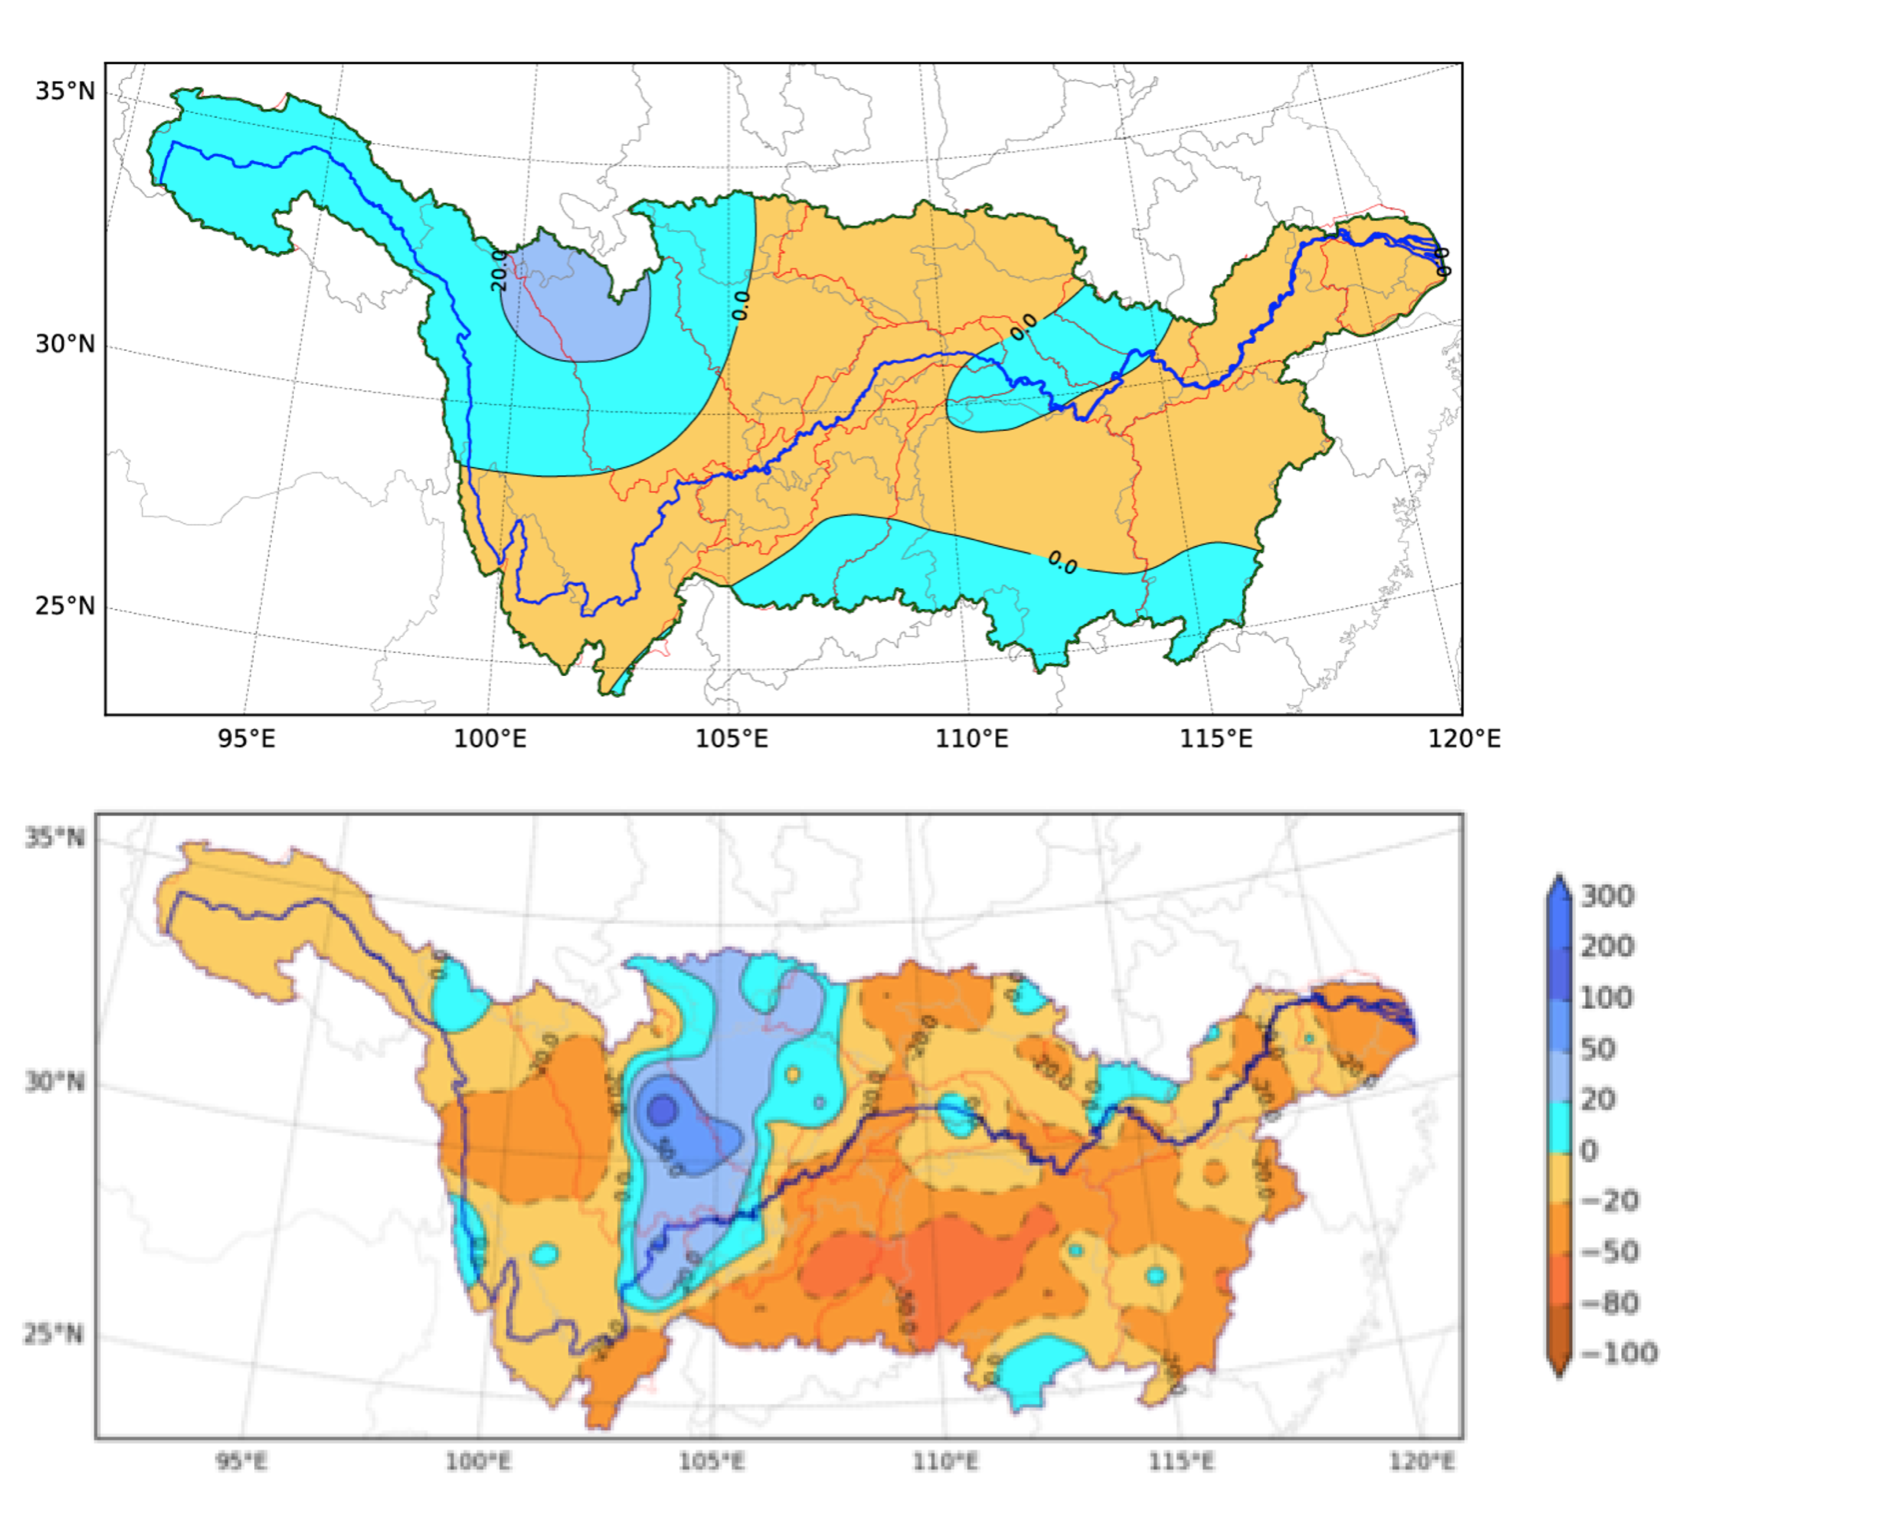 Precipitation anomaly predictions by percentage for June- August 2013 (top) and the observed results (bottom)